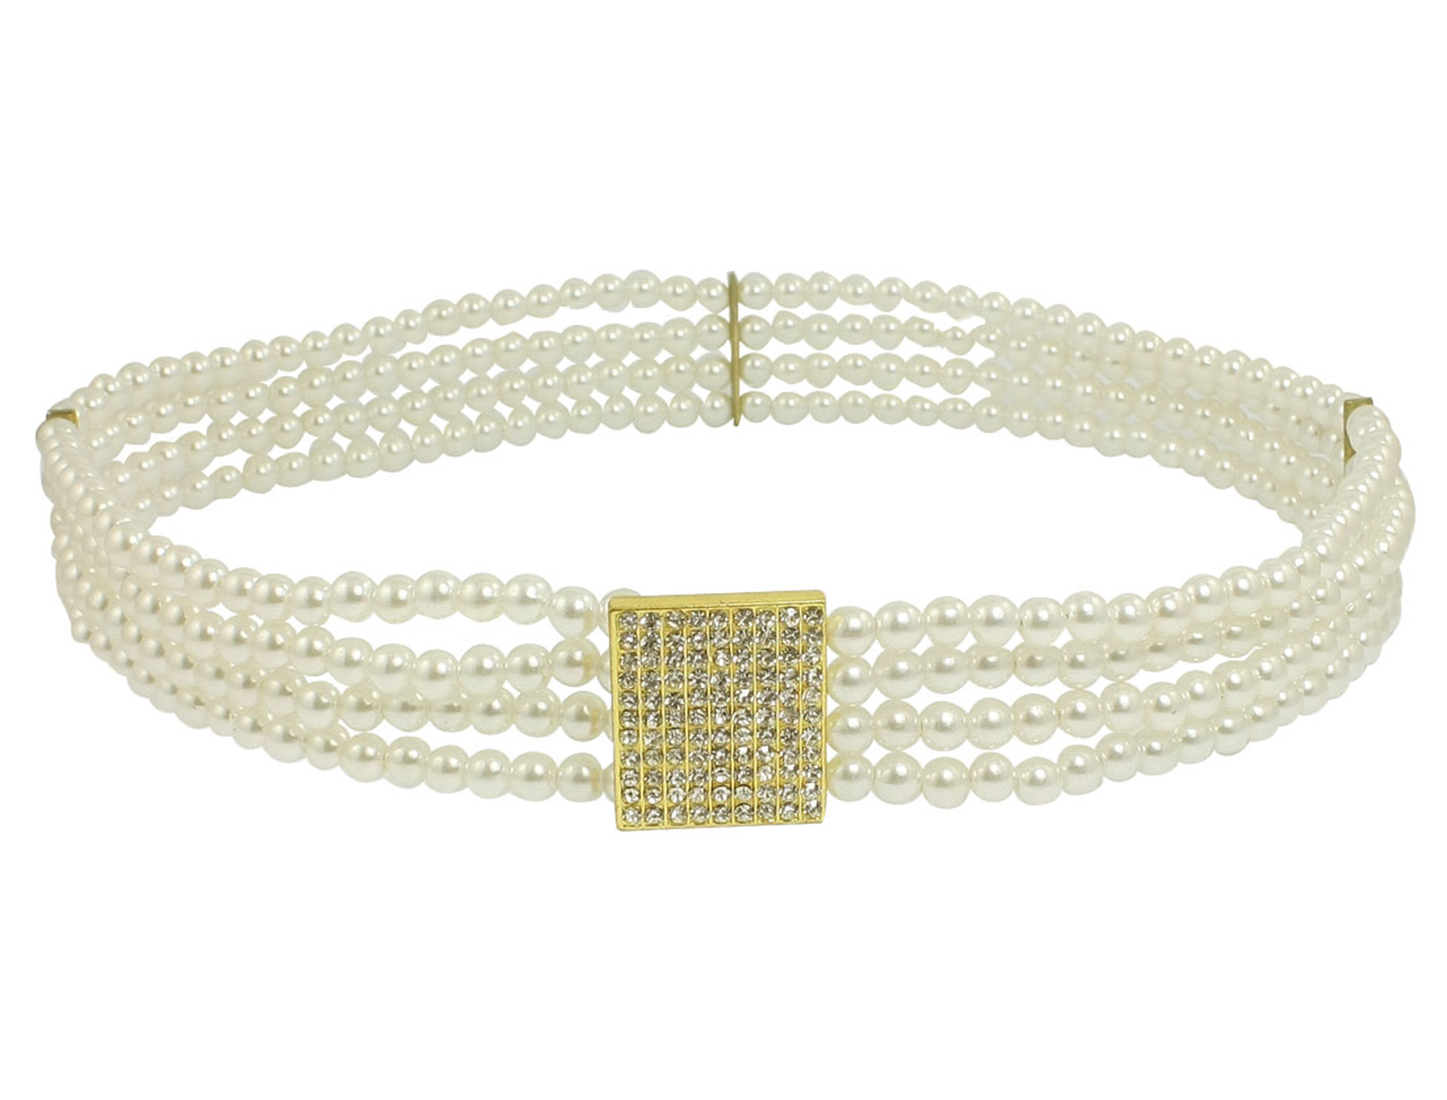 White Plastic Four Row Round Imitation Pearls Elastic Waist Belt for Lady